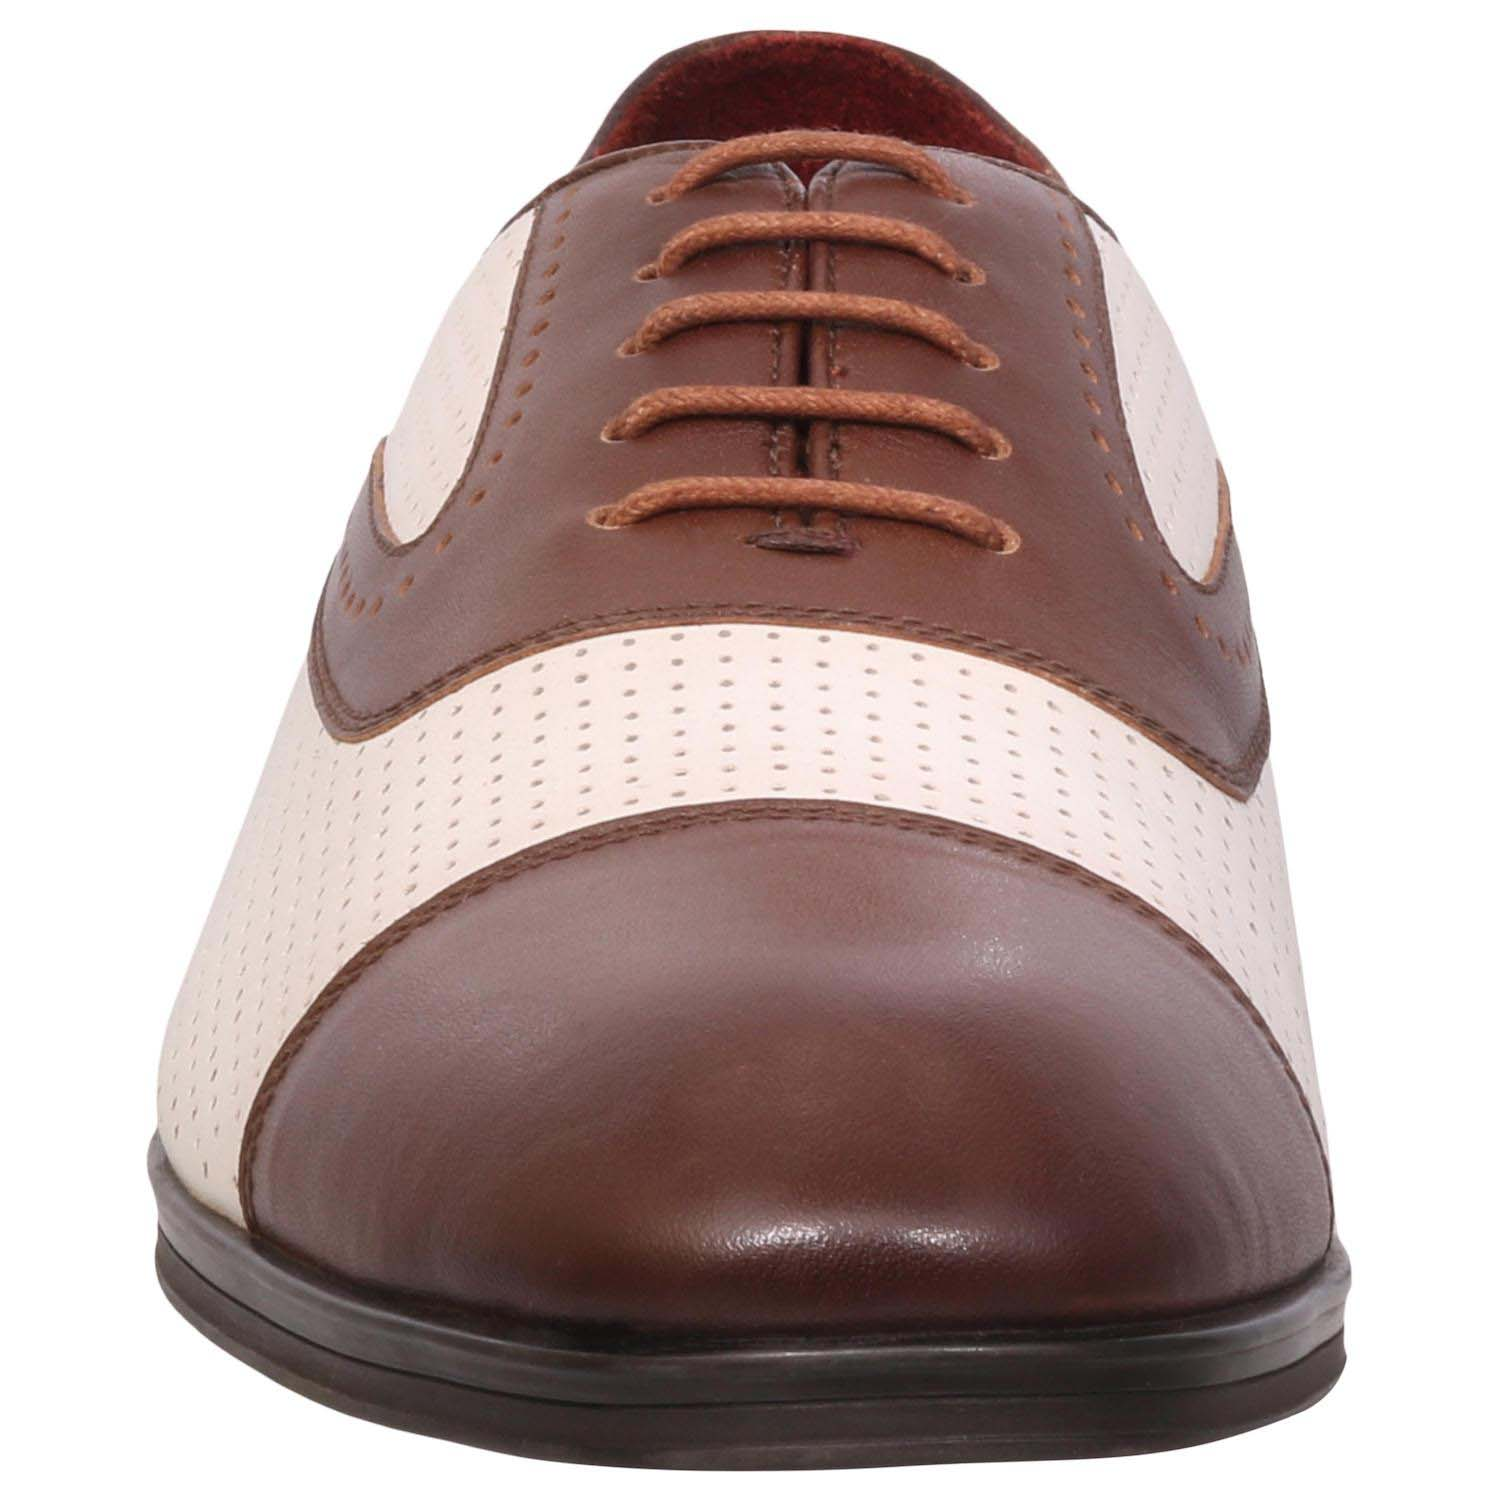 White/Brown Lace-Up Formal Shoes